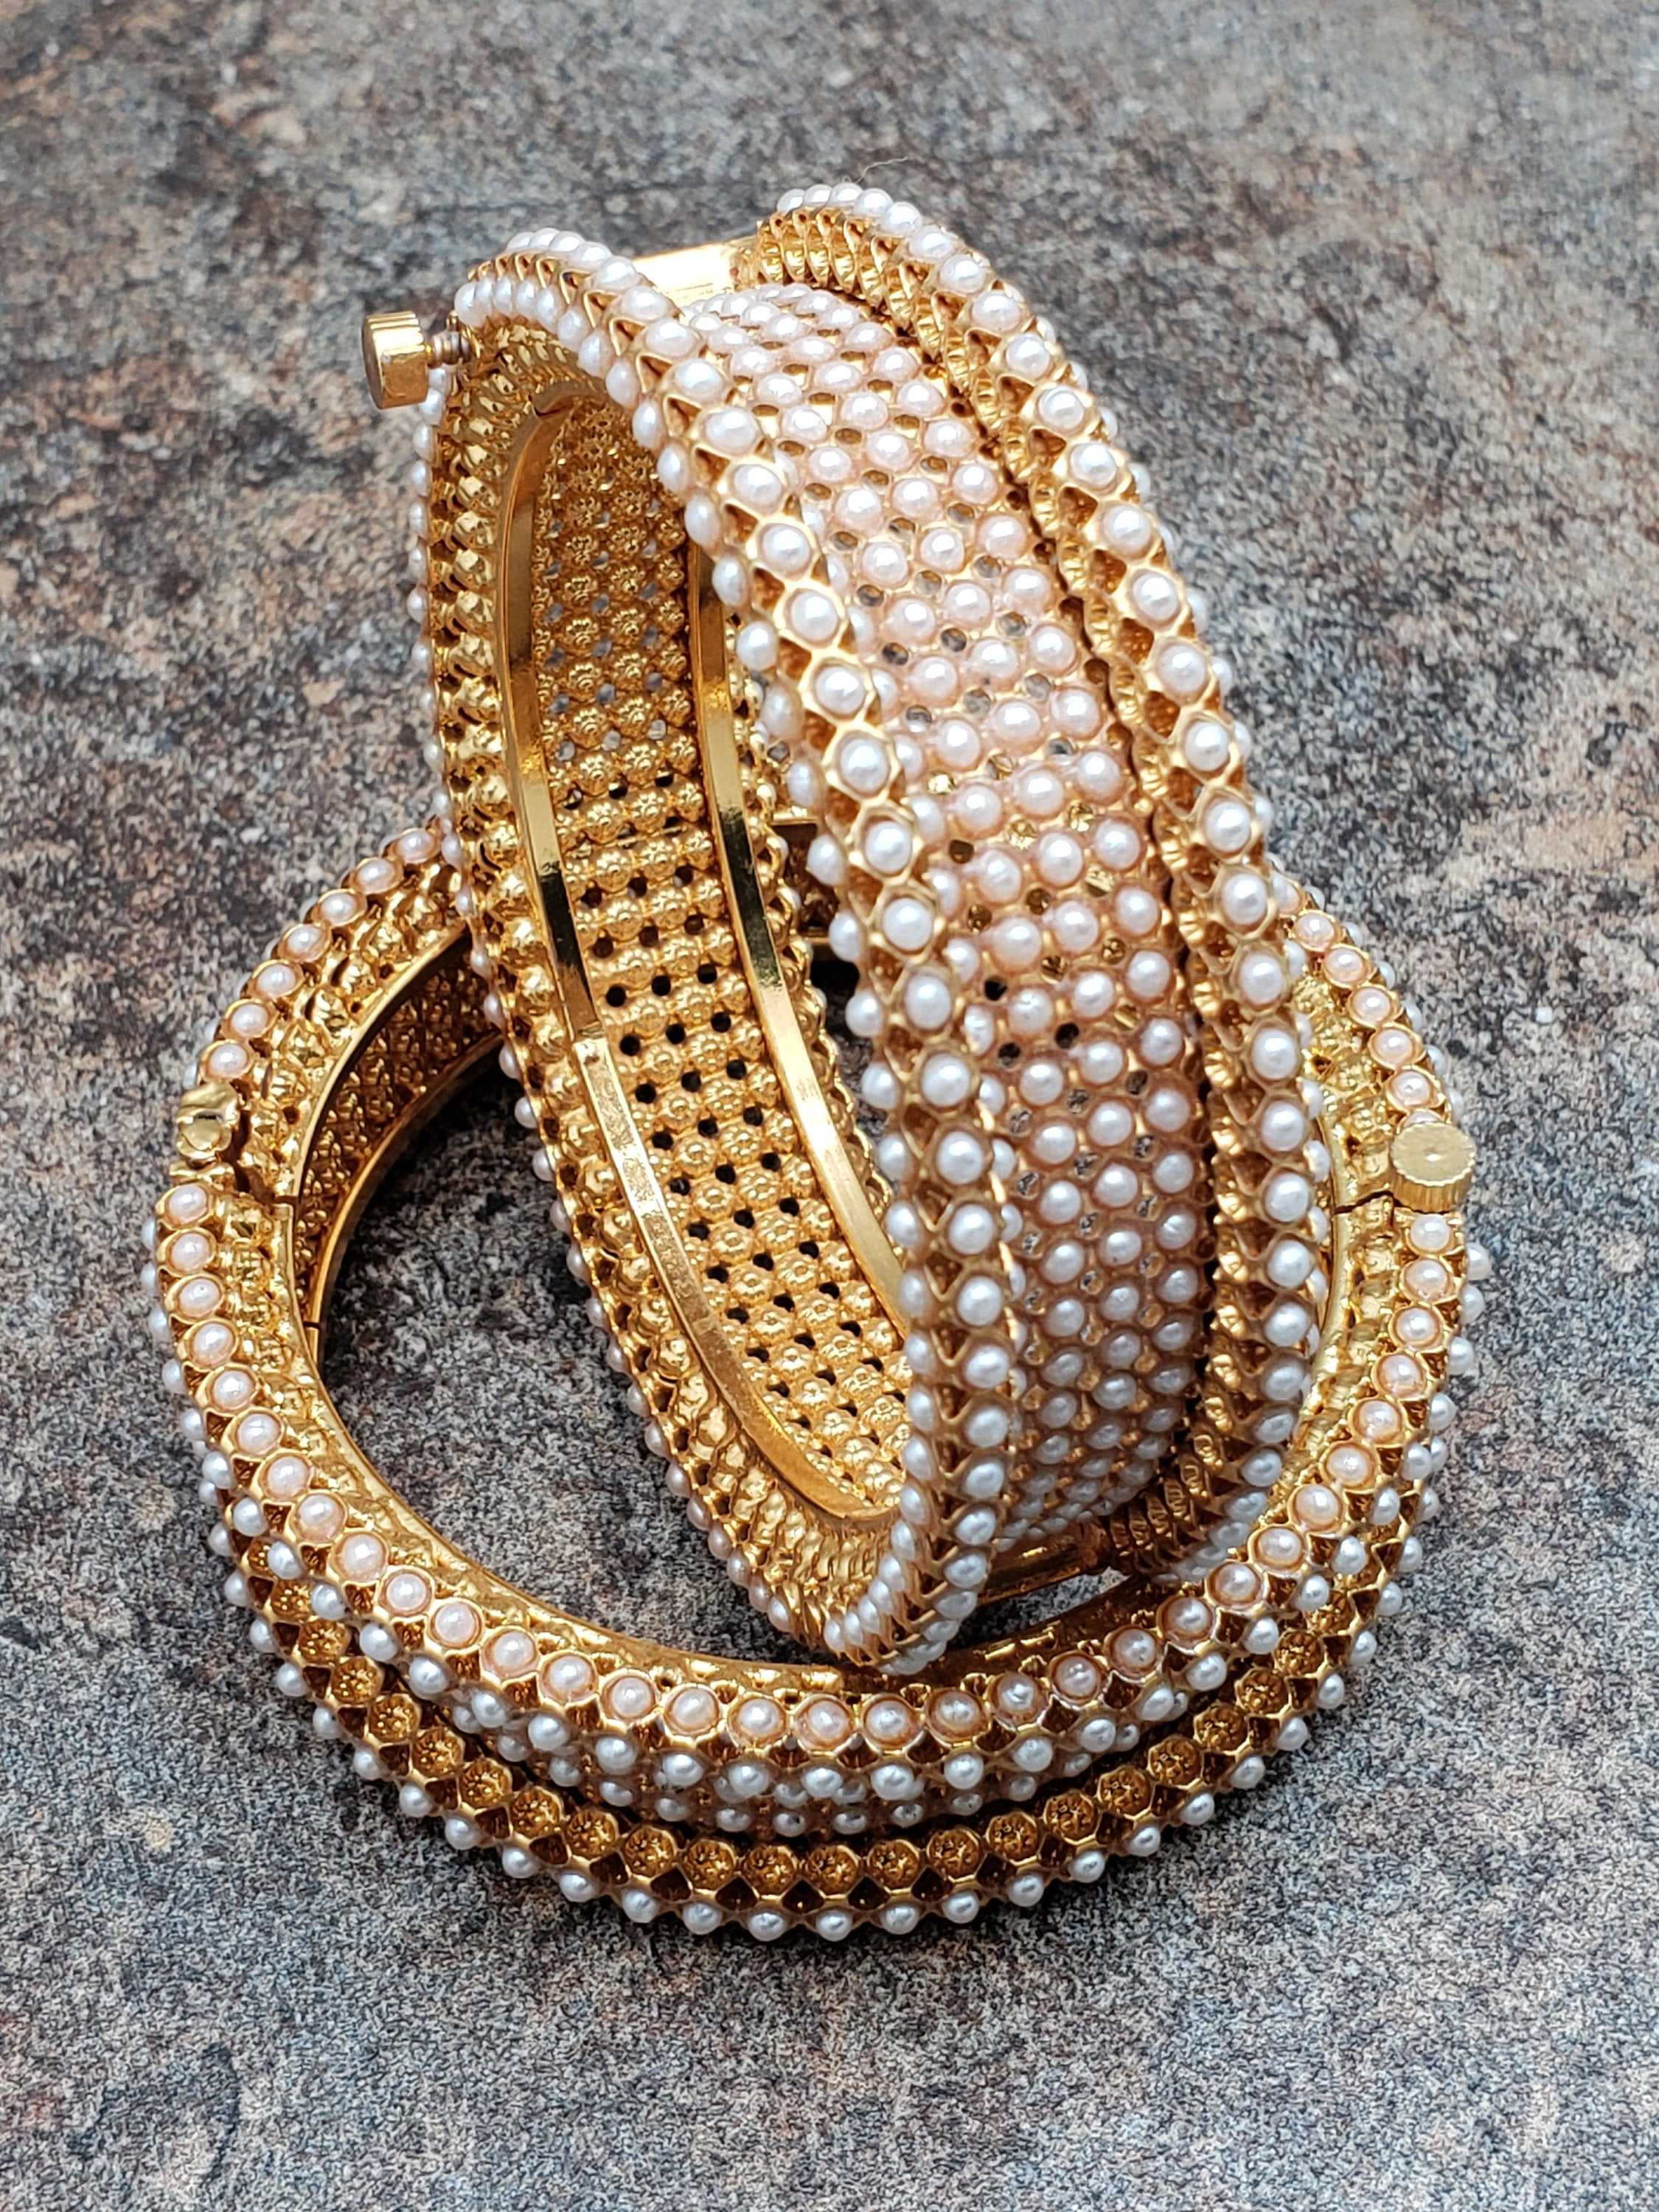 Pair of Bangles, Gold Kada with Pearls, Size 2.4, Size 2.6, or Size 2.8